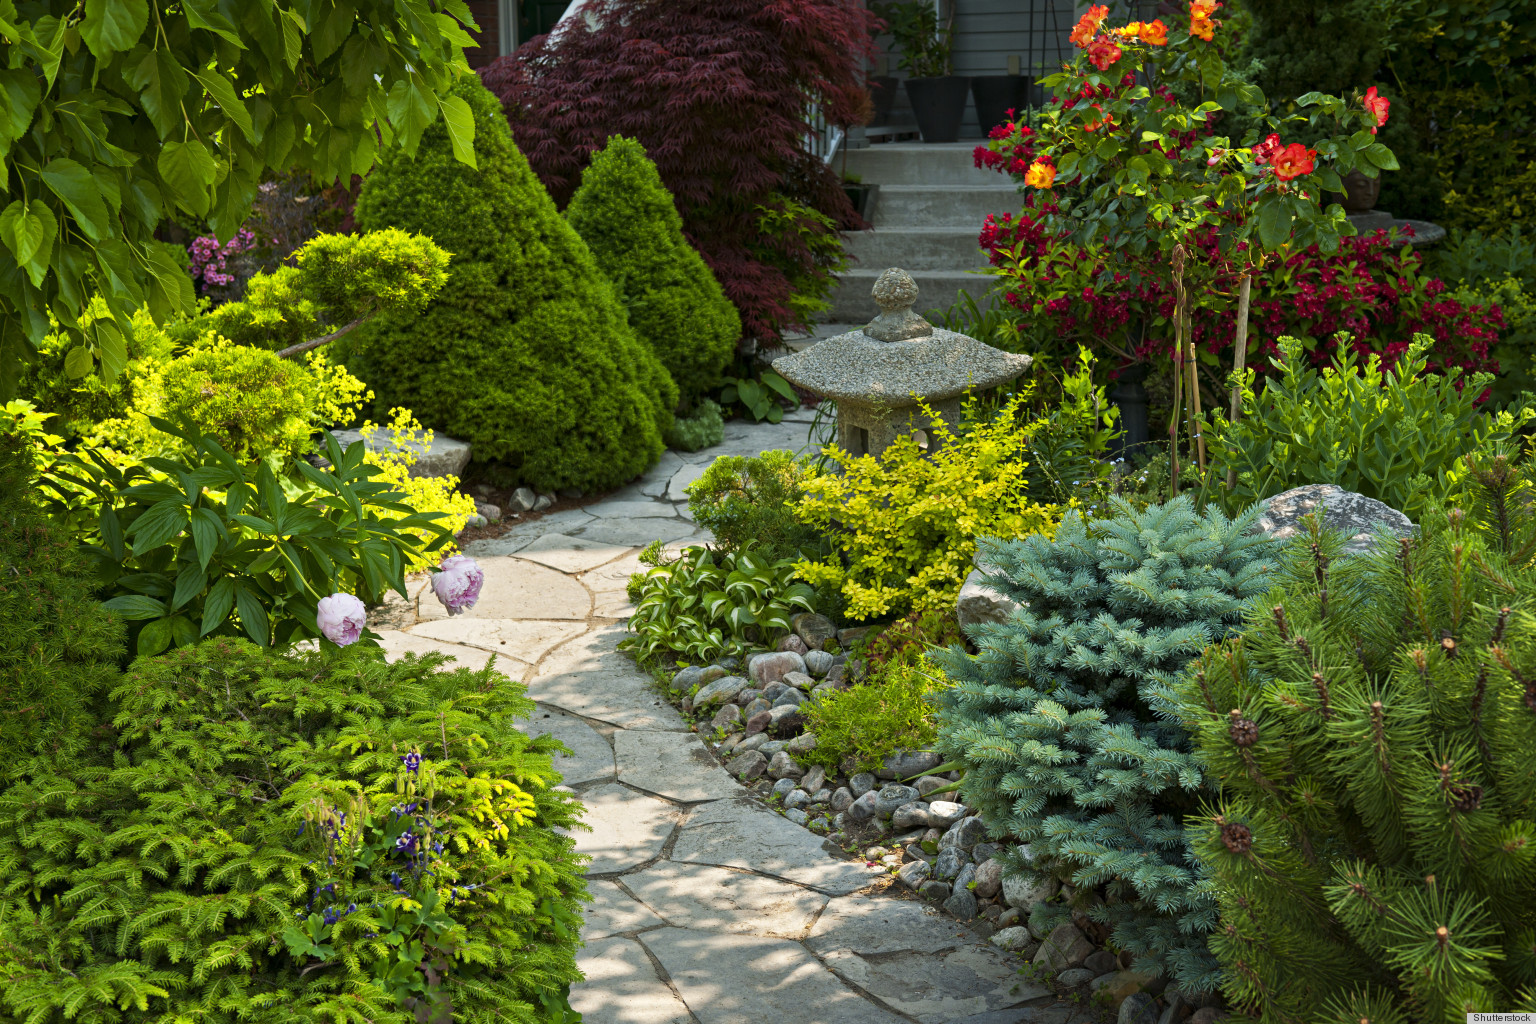 9 Weekend DIY Ideas That Will Inspire Your Inner Landscaper